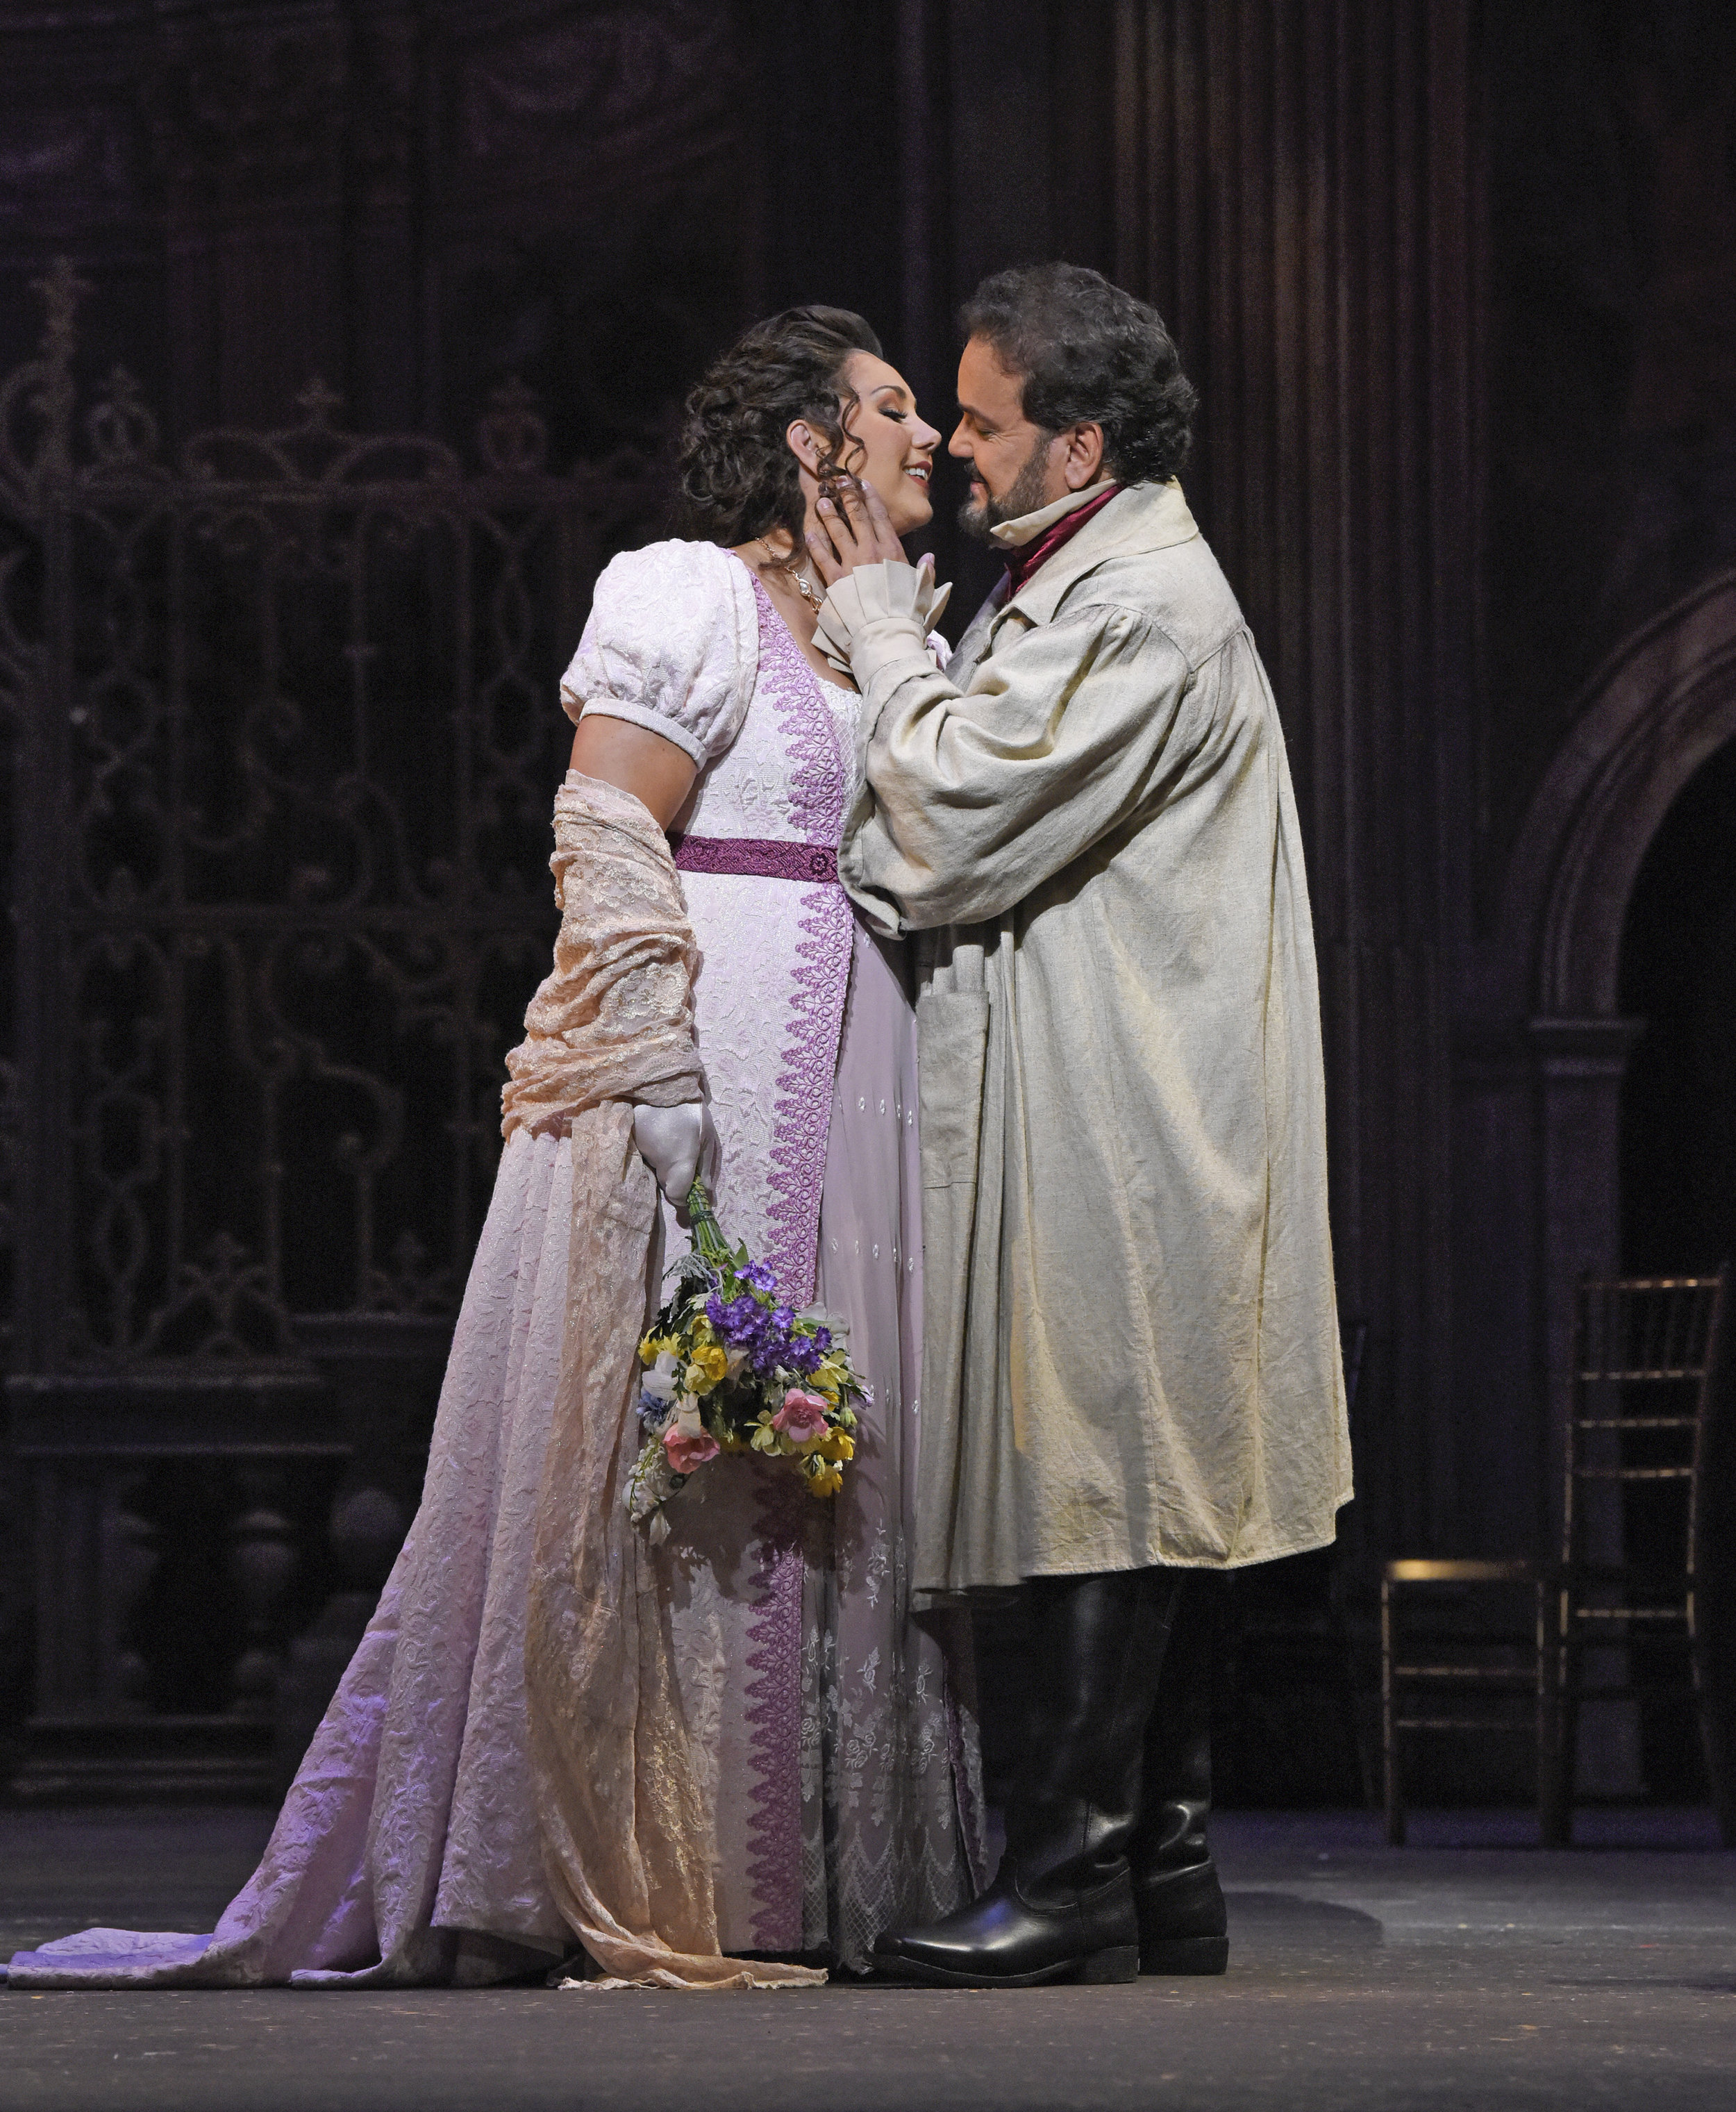 A Tosca performed at its melodramatic best - MySA